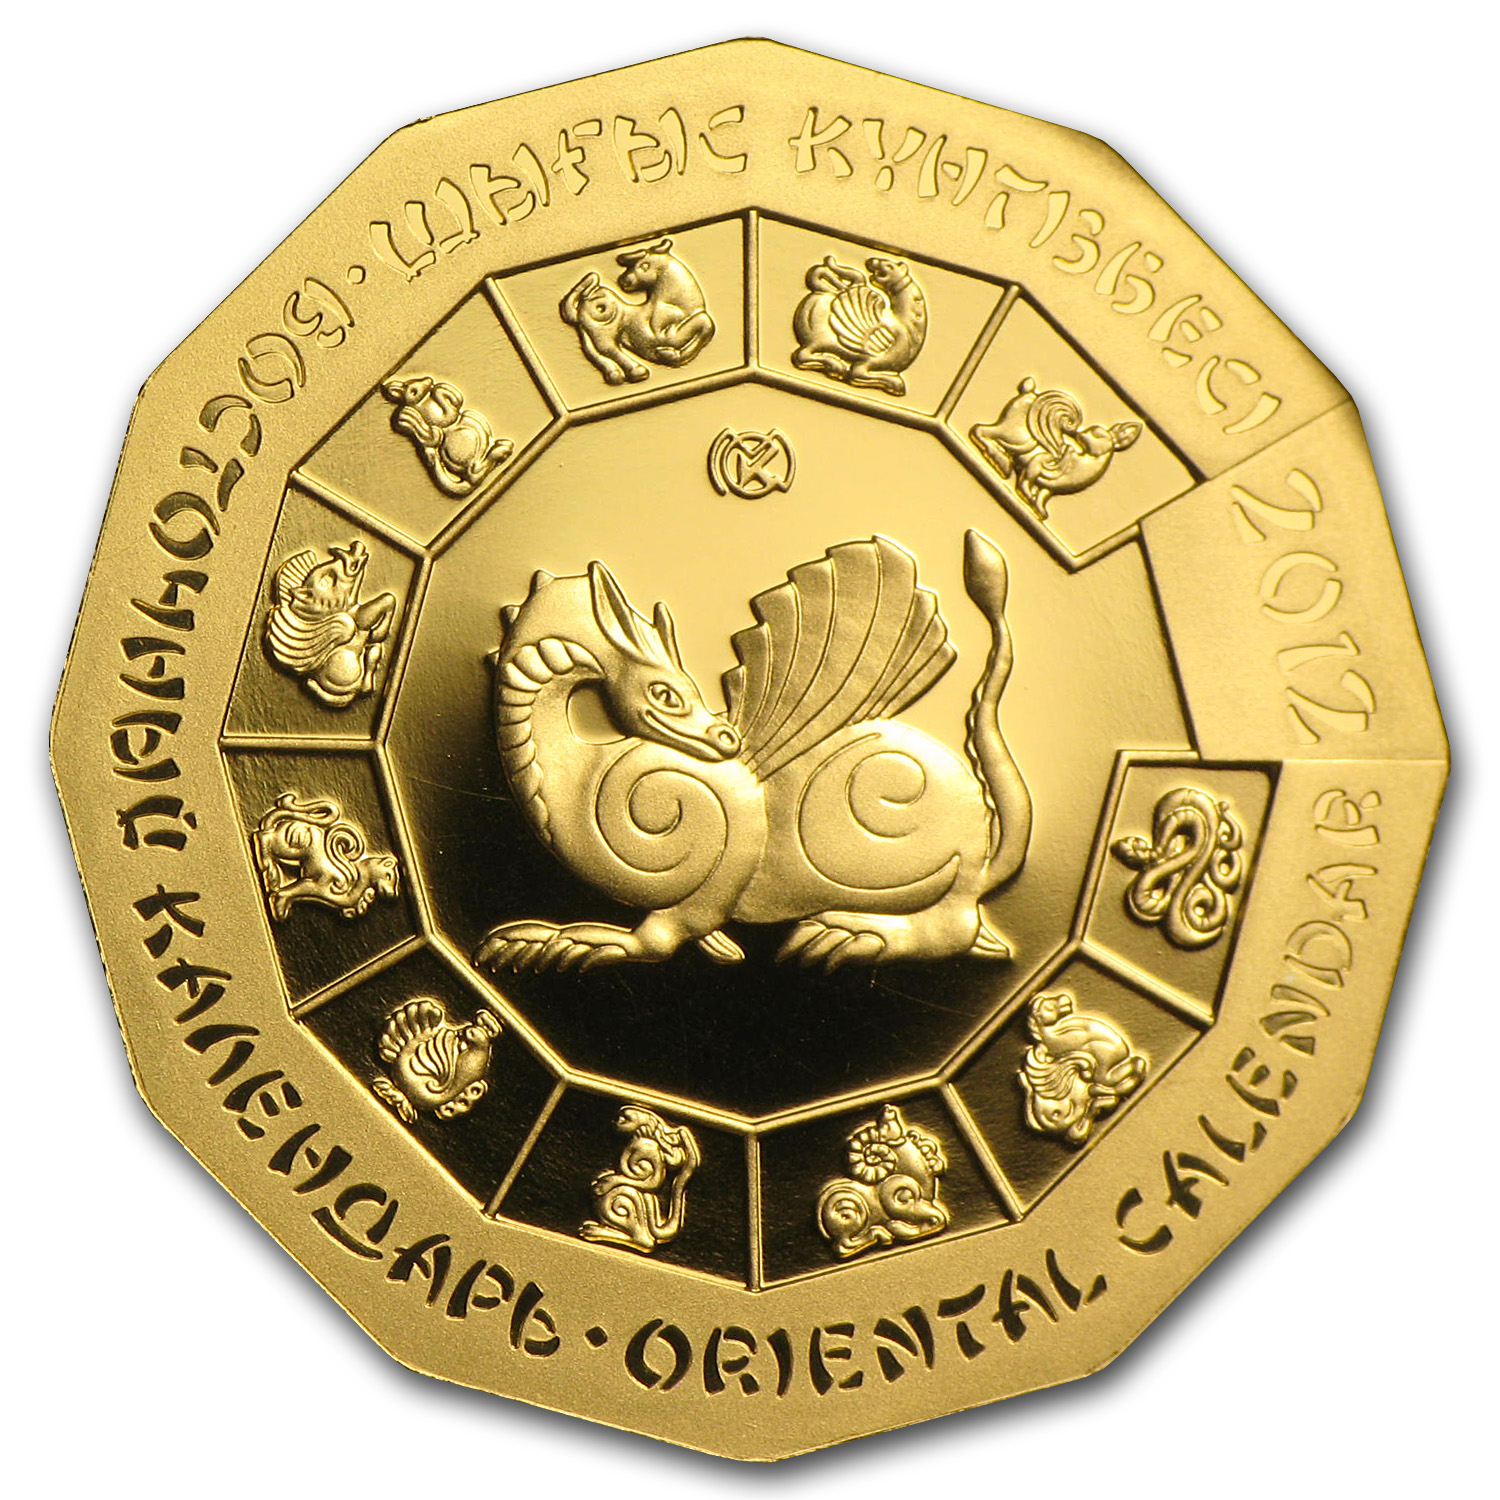 2012 Kazakhstan 1/4 oz Proof Gold 500 Tenge Year of the Dragon